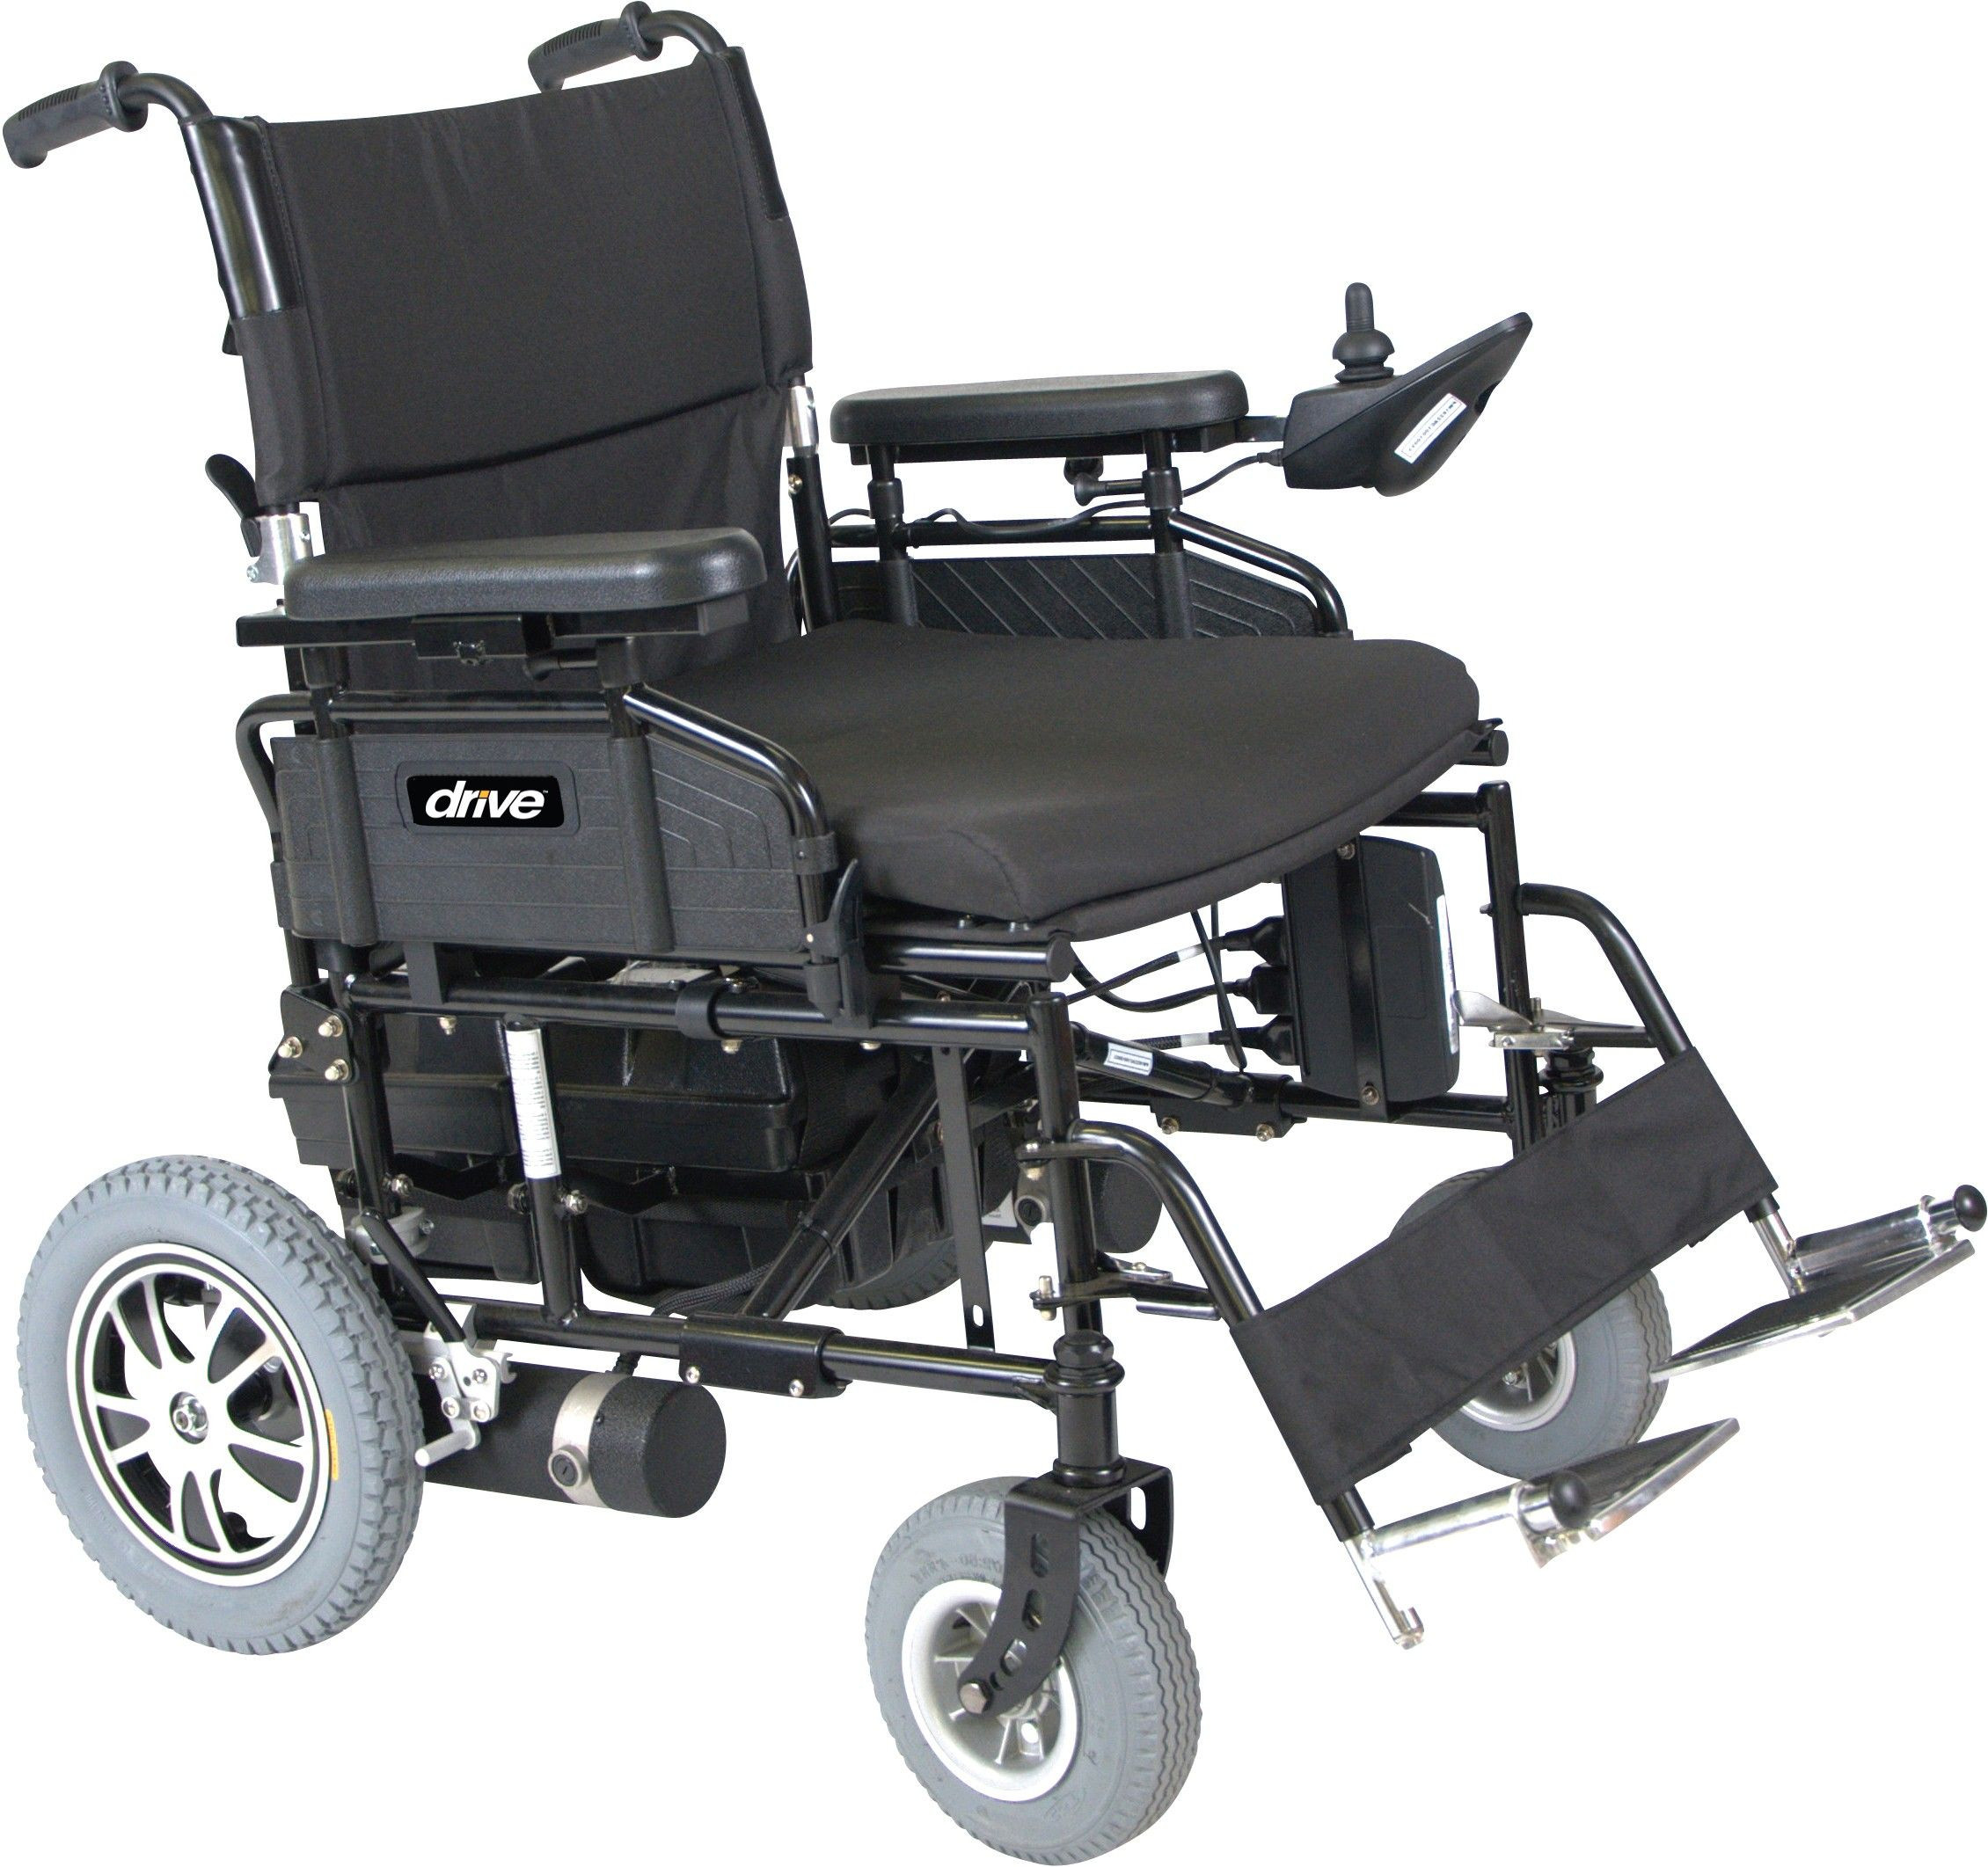 Wildcat 450 Power Wheelchair for Sale